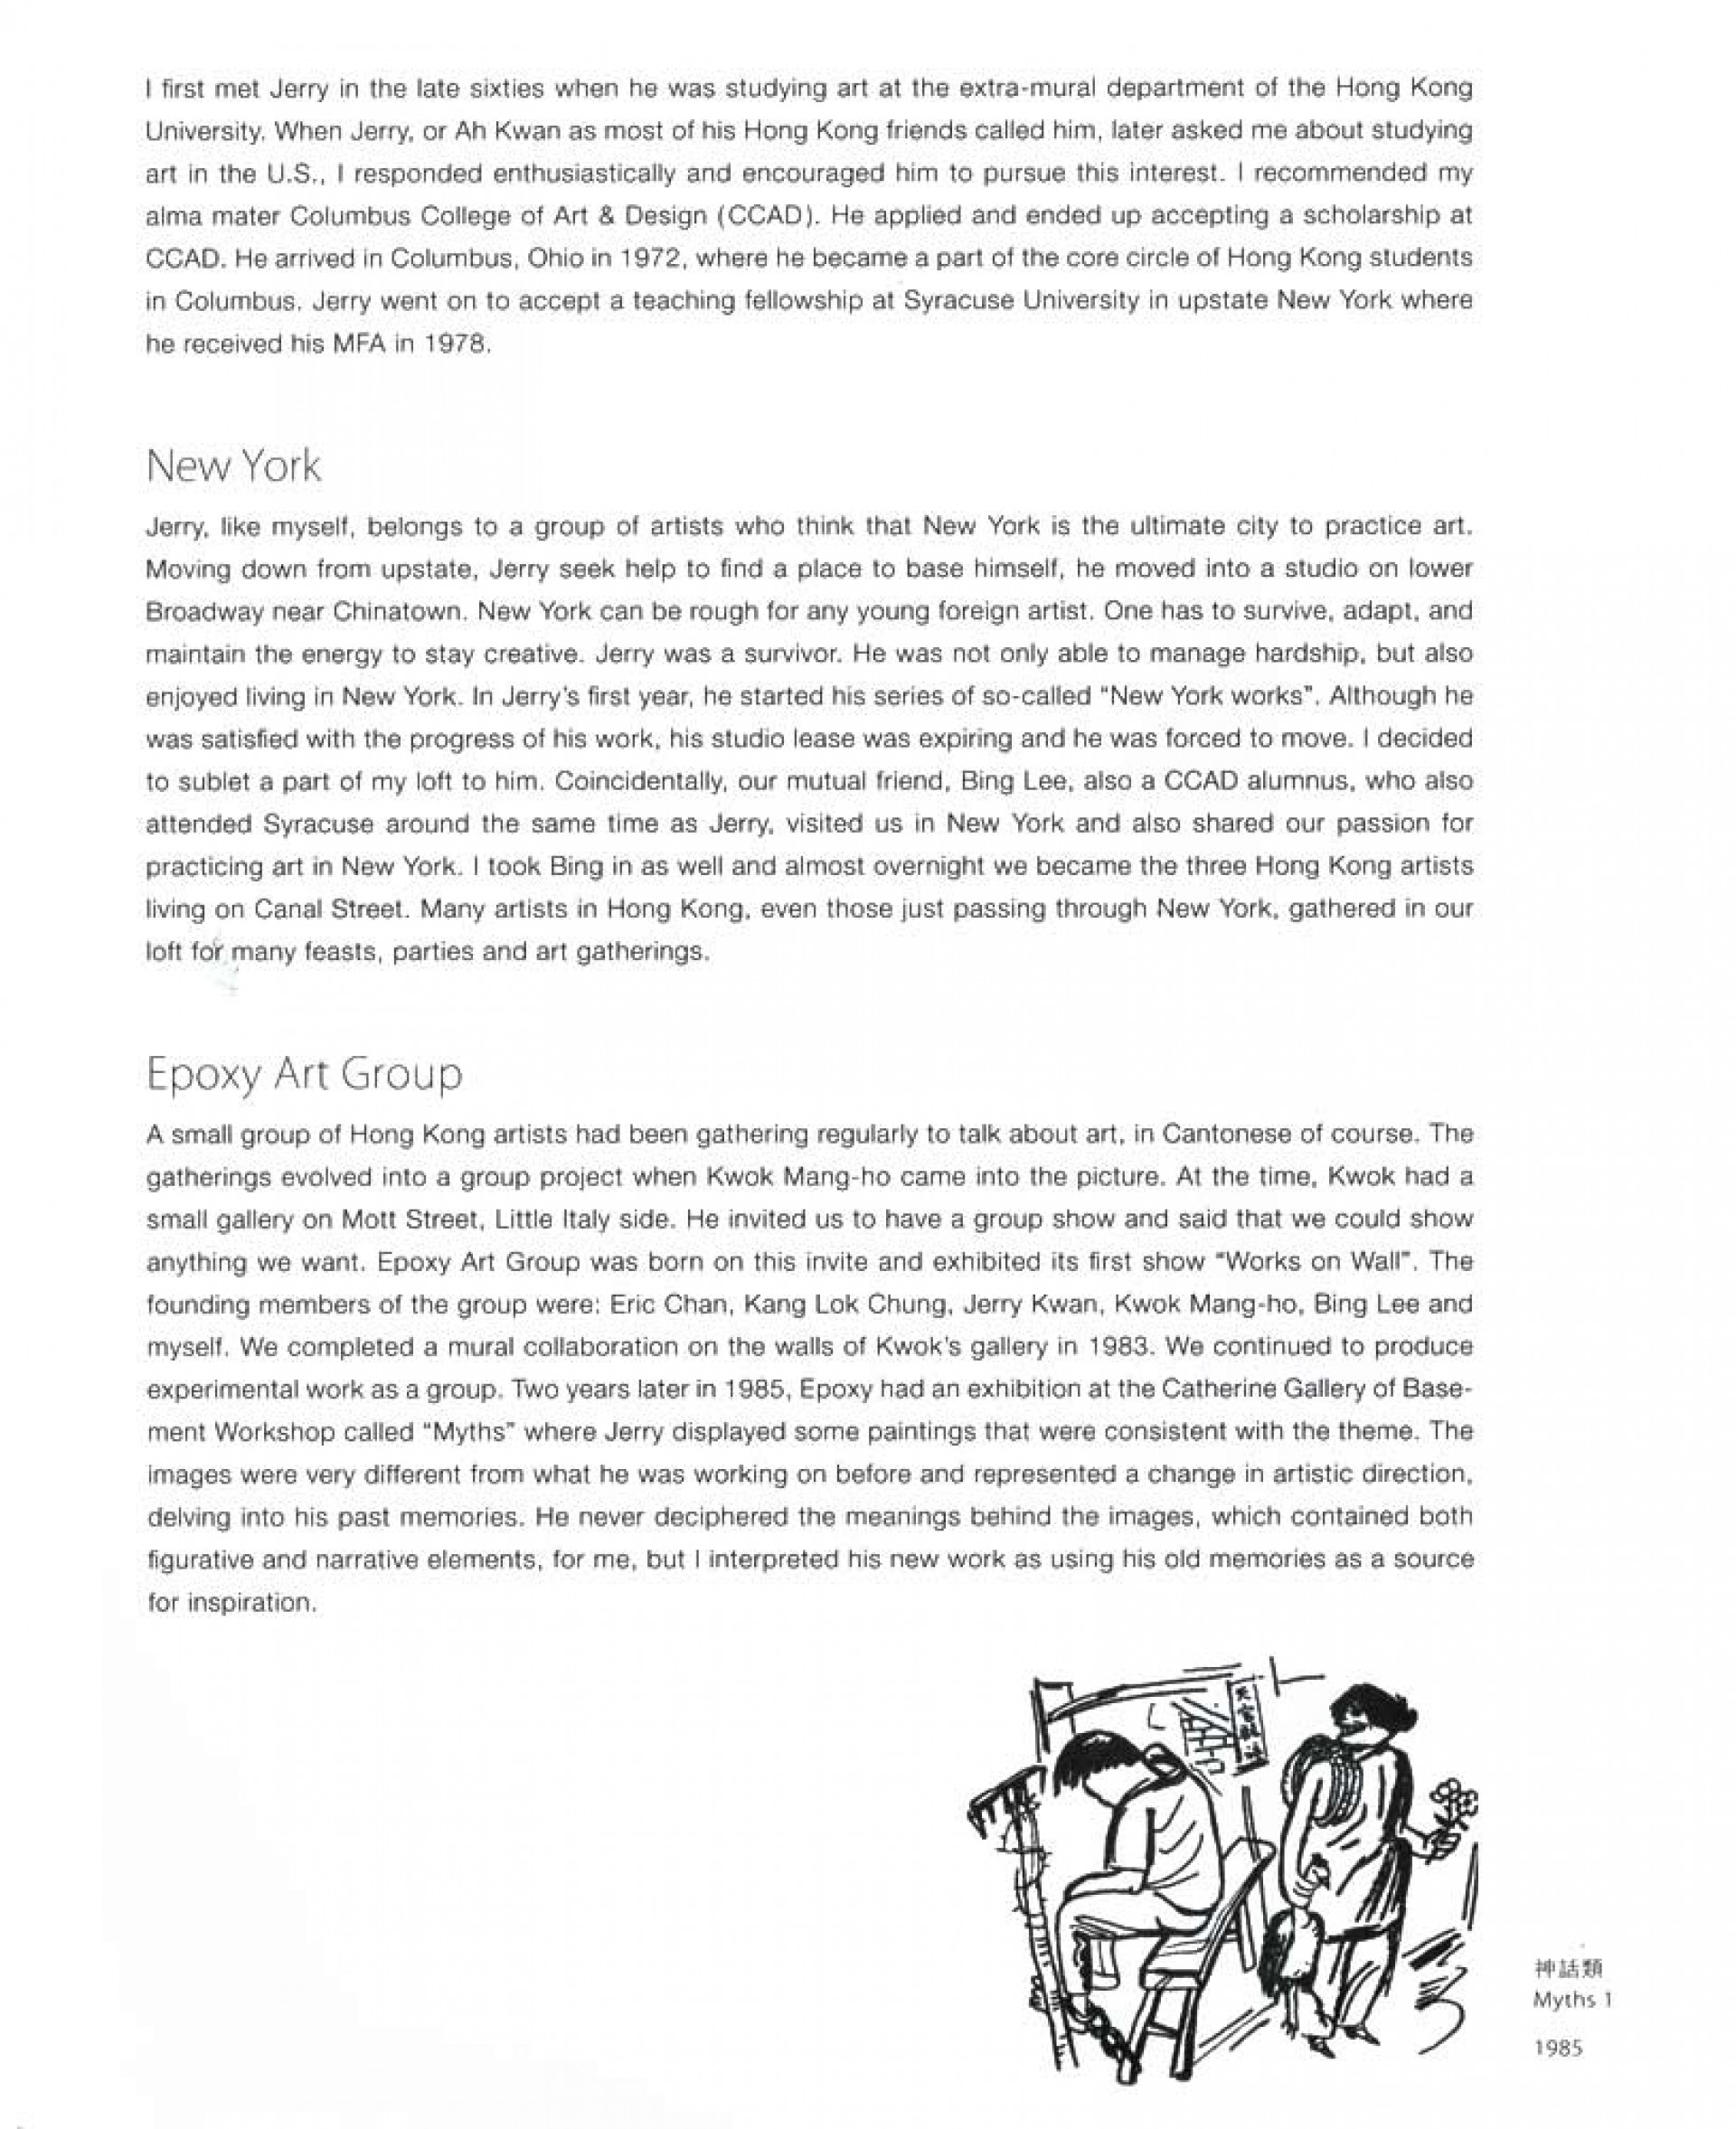 003 My Friend Essay Example English Best Essays On Friends Ddrtipnodnsru Writing In Jerry Kwan Hindi Mother Is For Class Books Are Awesome Marathi 5 1920